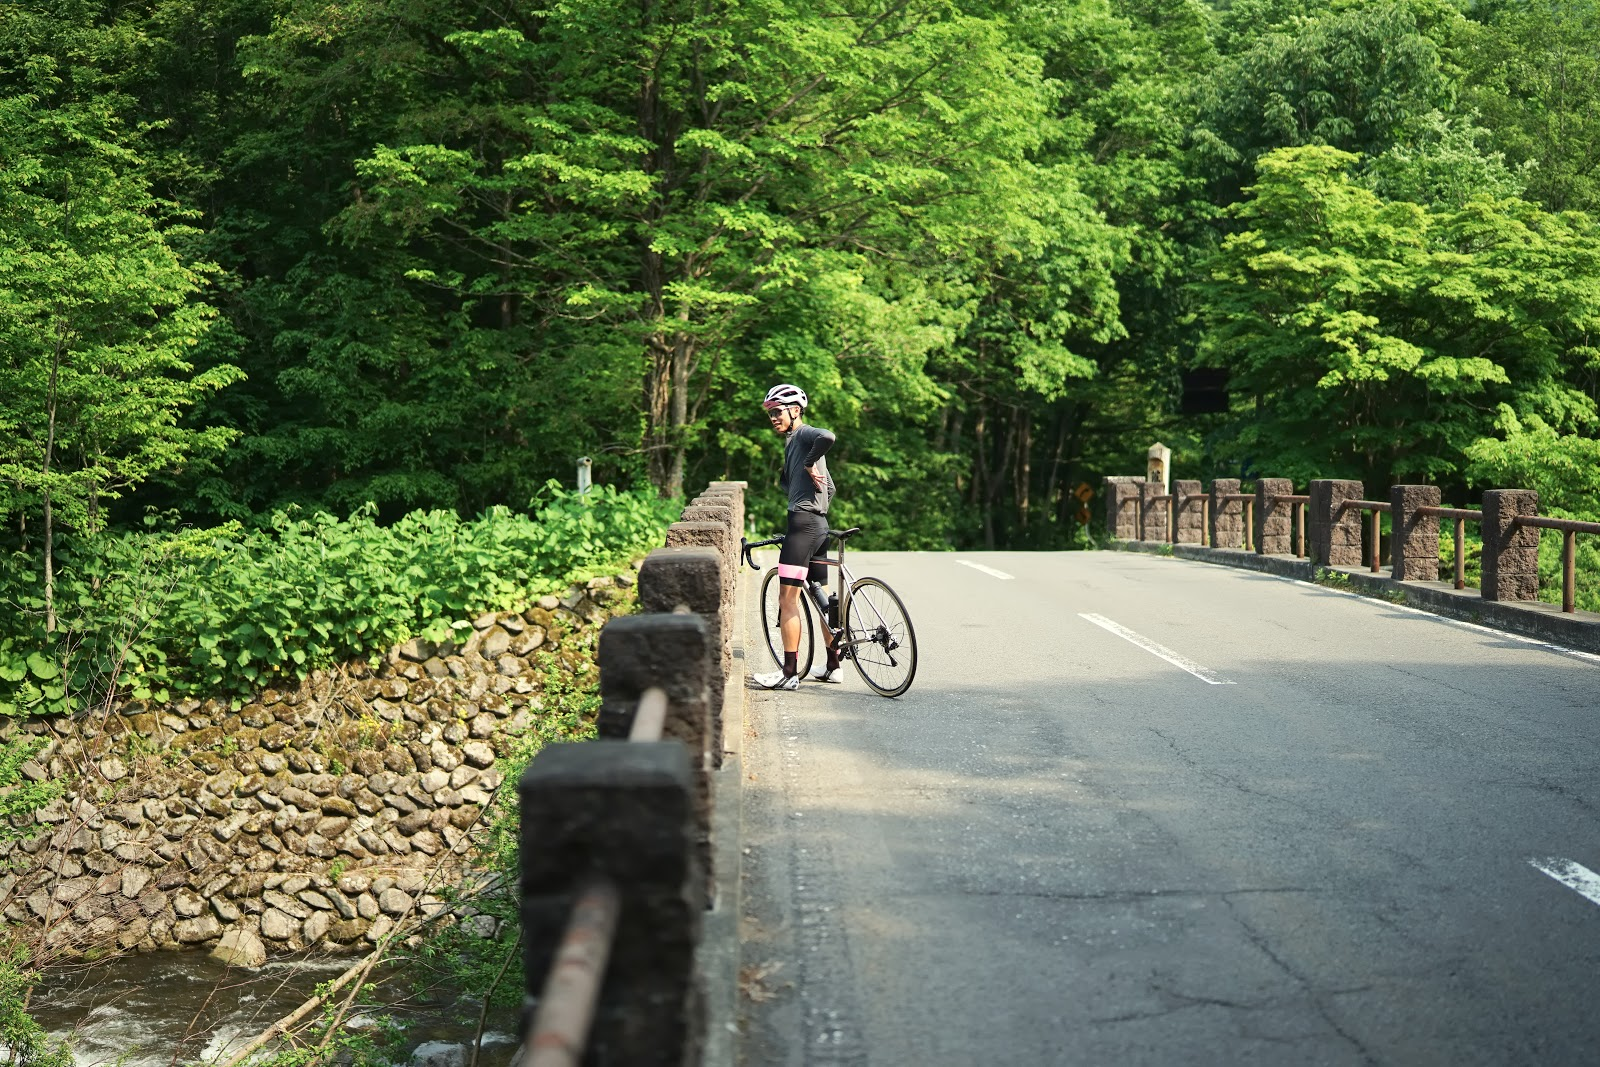 Cyclist on outlands bike tour bridge and Aomori Beech Forest